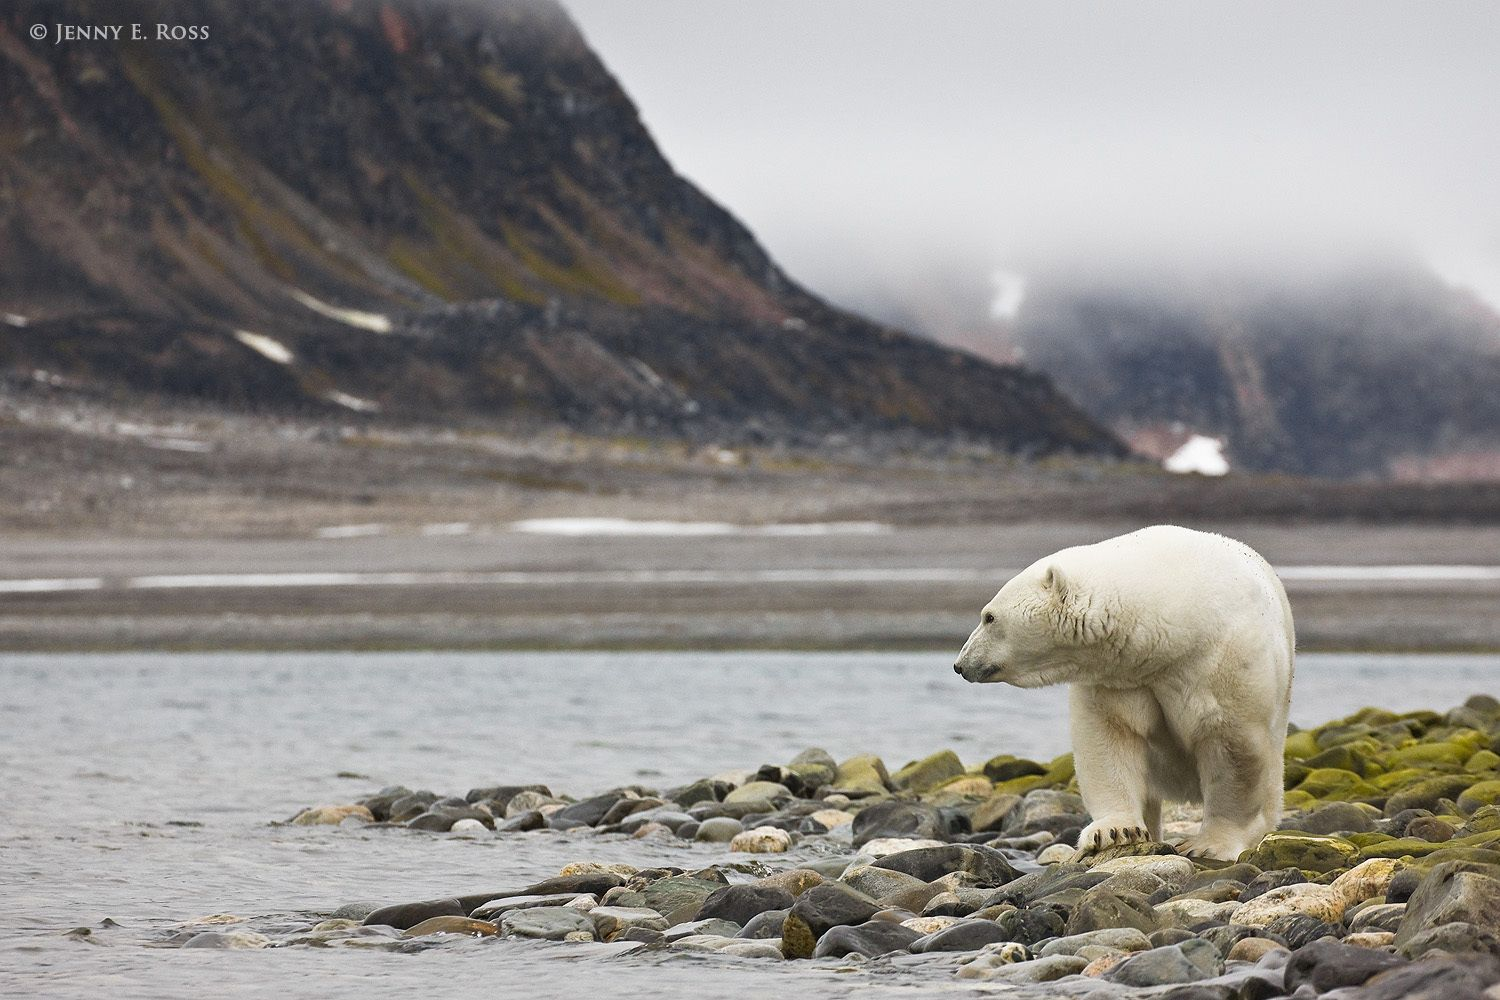 A large adult female polar bear gazes out at the sea while stranded ashore due to lack of sea ice.